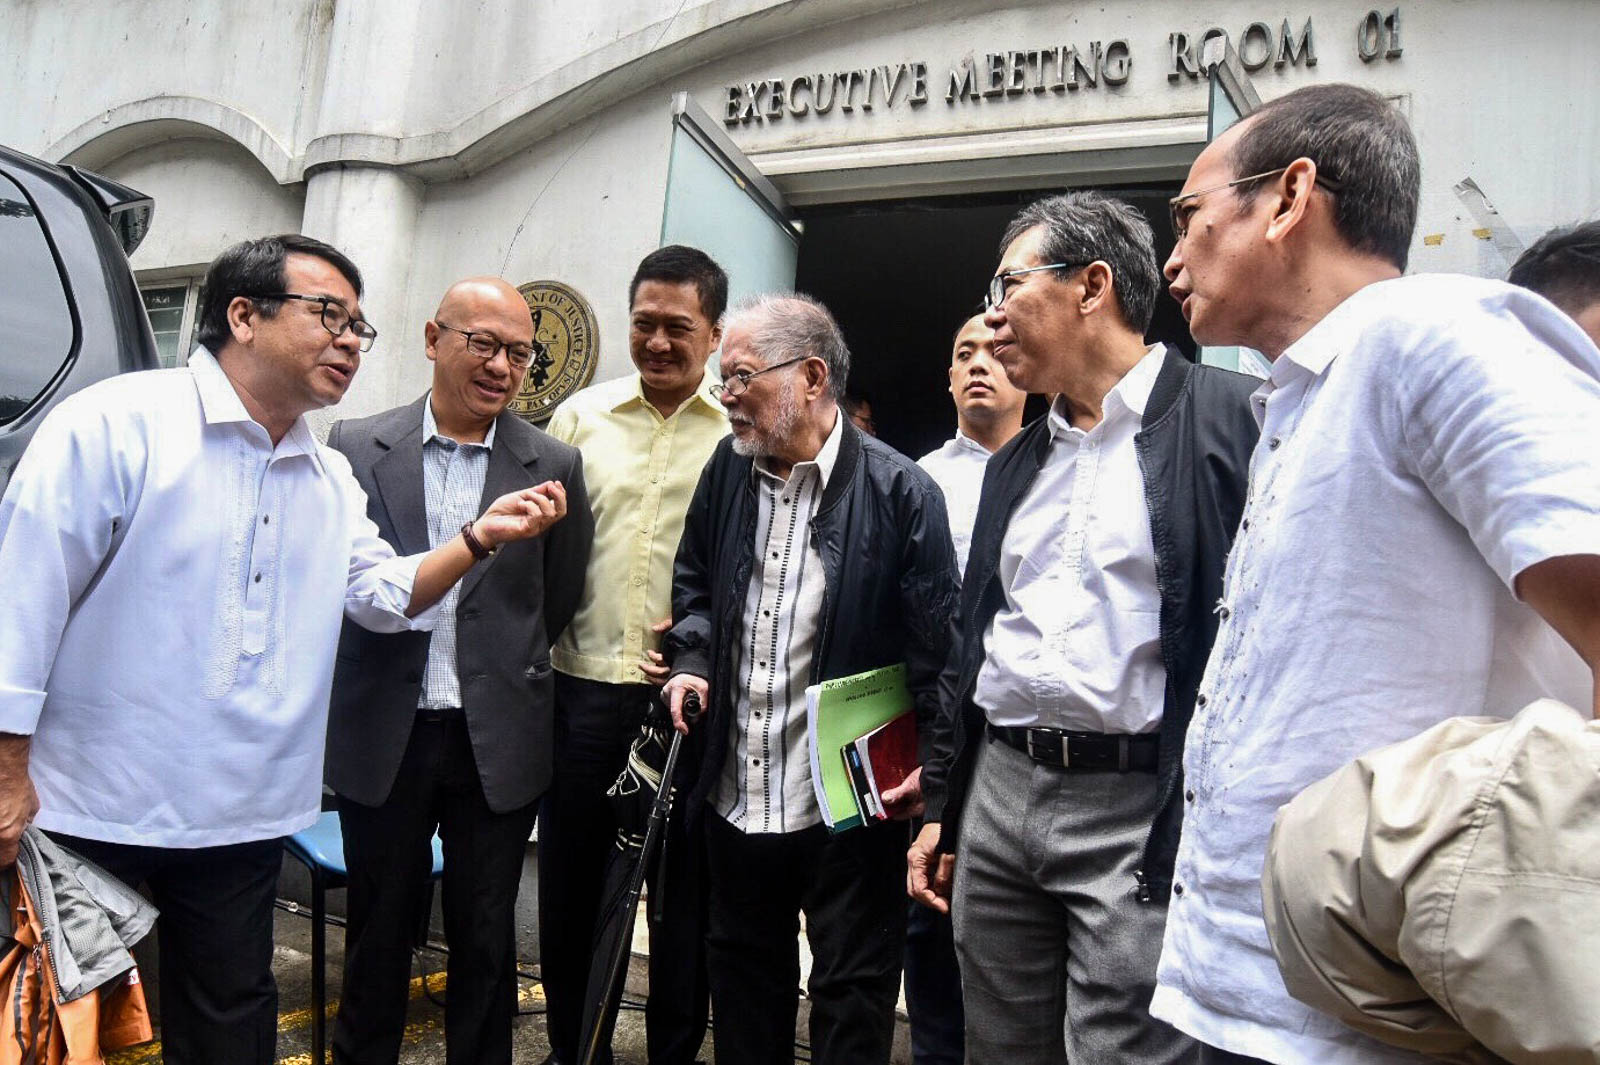 SEDITION COMPLAINT. The country's noted lawyers Neri Colmenares, Florin Hilbay, Erin Tau00f1ada, Rene Saguisag, Chel Diokno, and Edre Olalia are present during the DOJ's first hearing on the inciting to sedition complaint against the opposition on August 9, 2019. Photo by Angie de Silva/Rappler